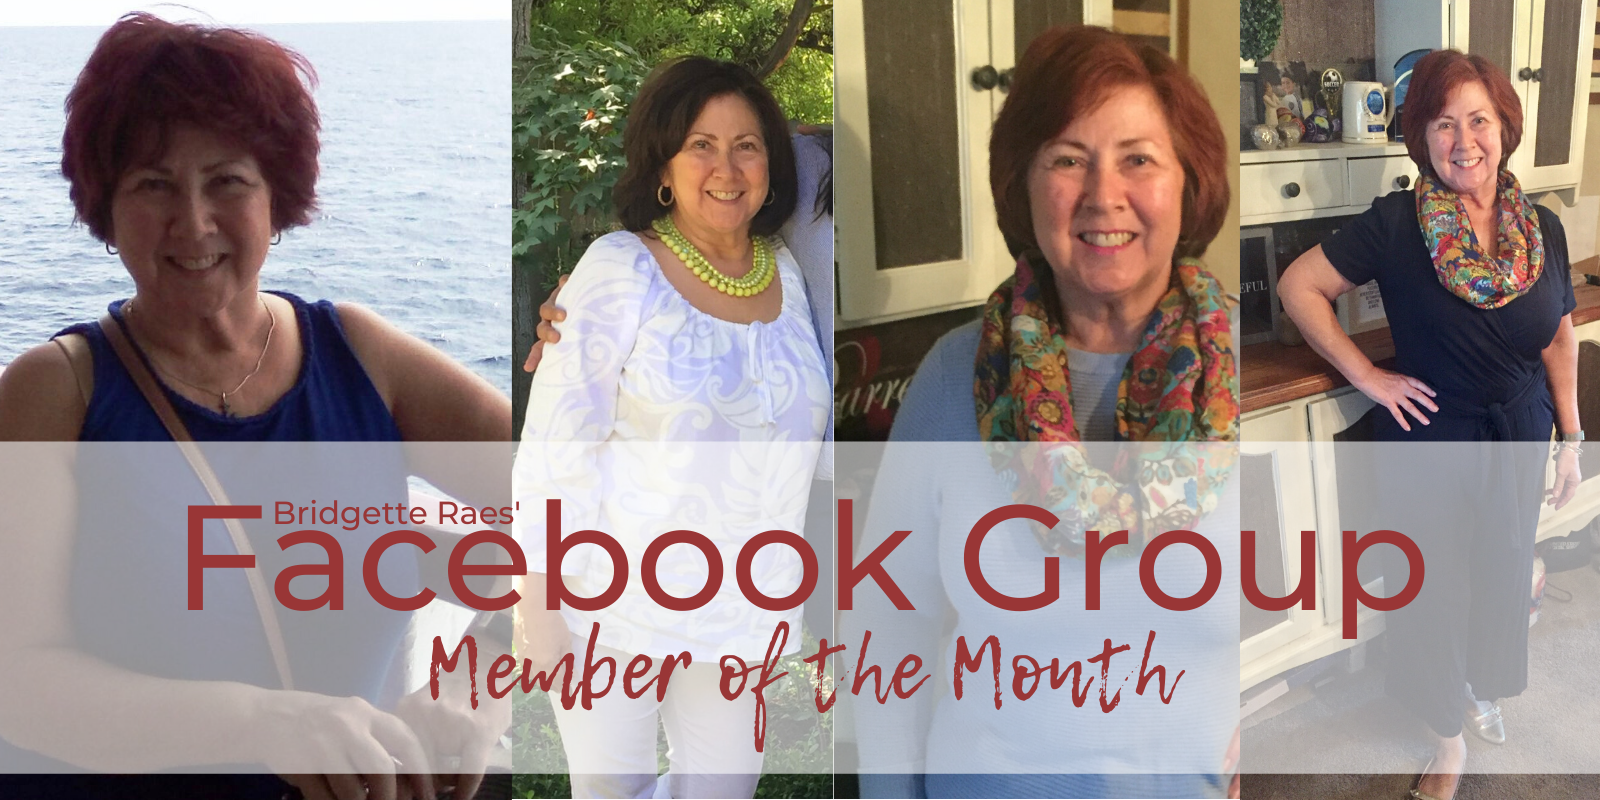 Facebook Group Member of the Month: Sally Barrera